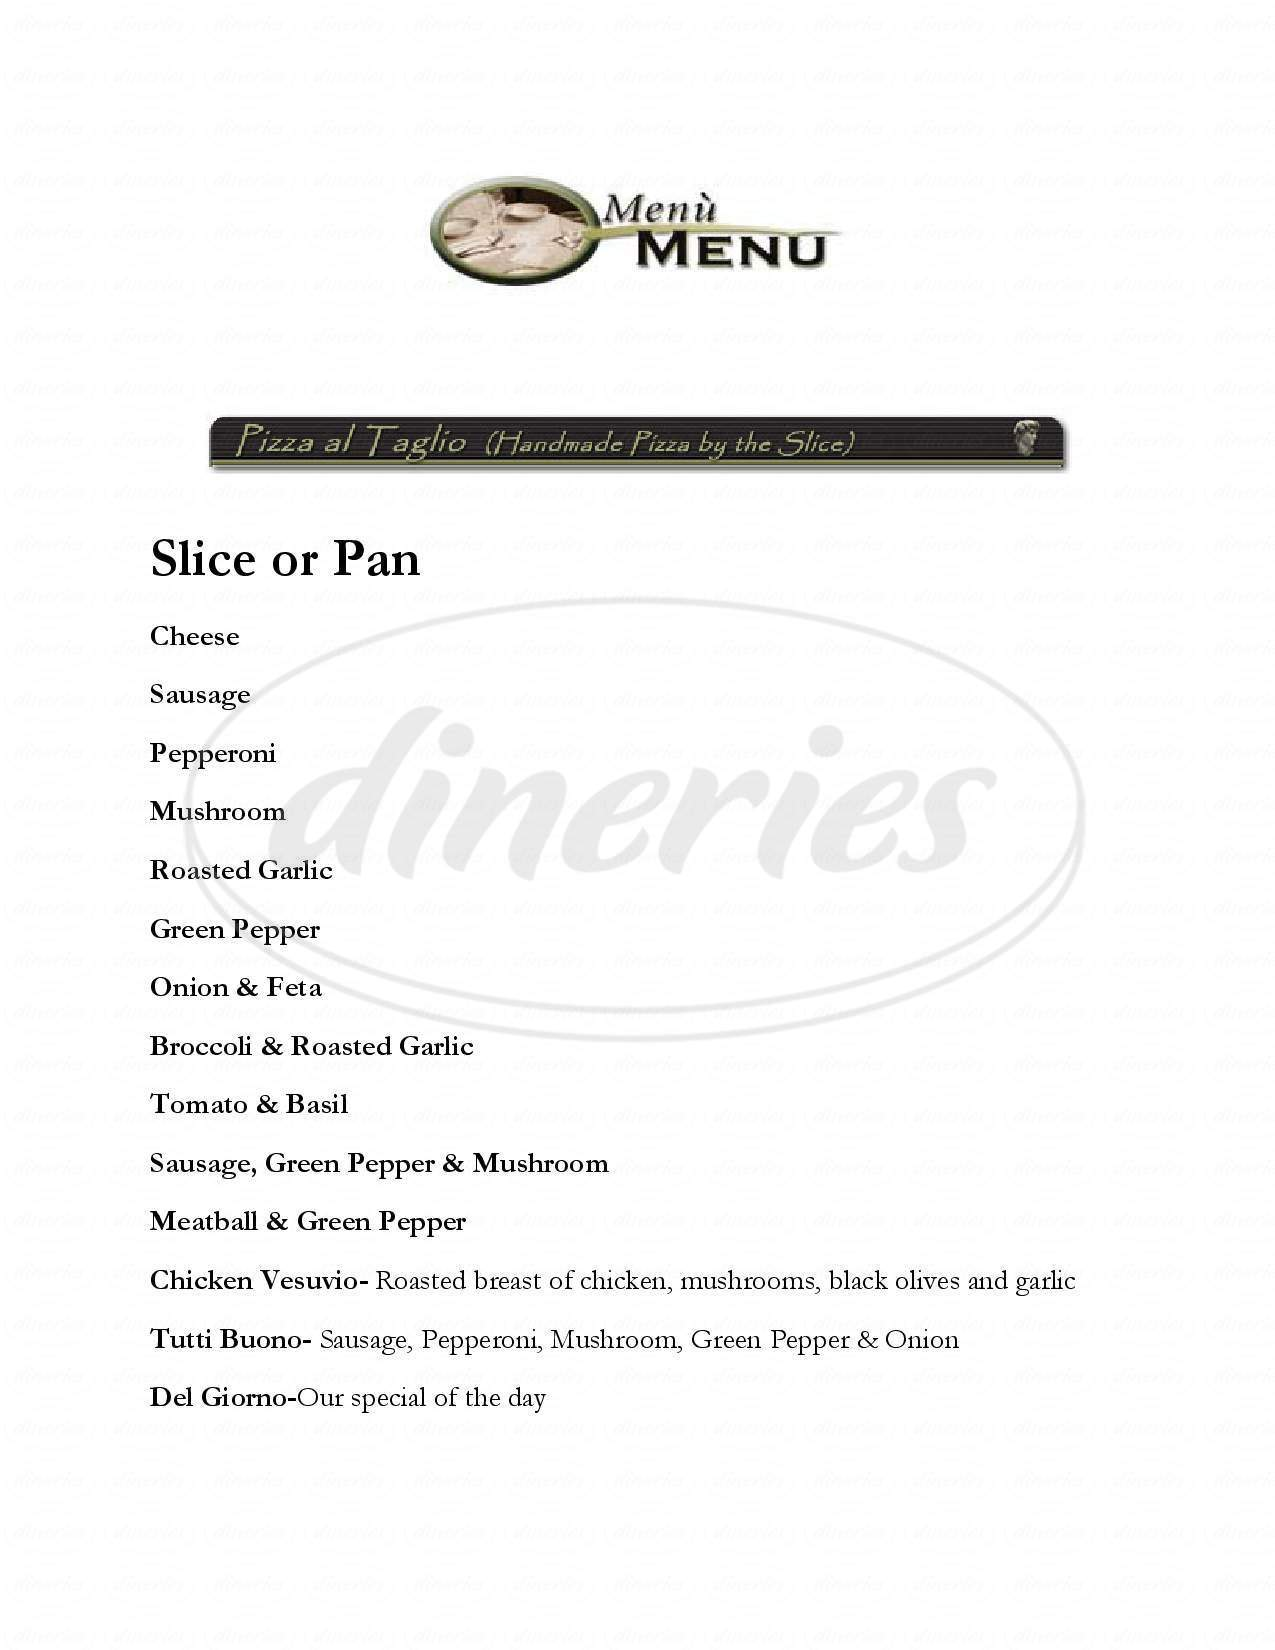 menu for Pizzeria Venti